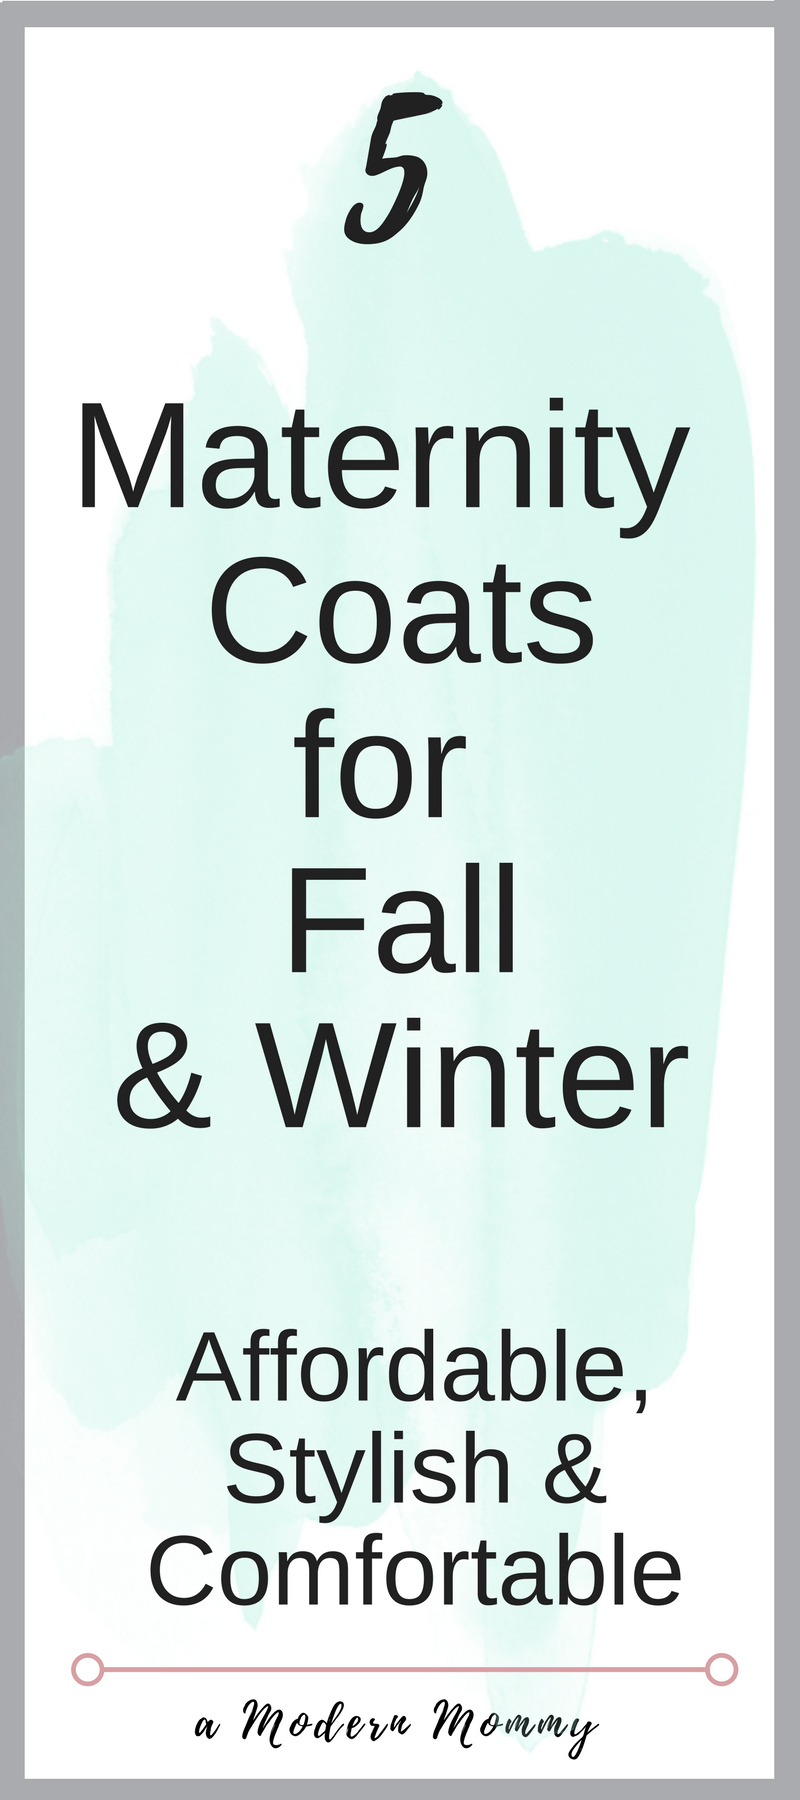 Maternity Coats for Fall and Winter to keep you Cozy